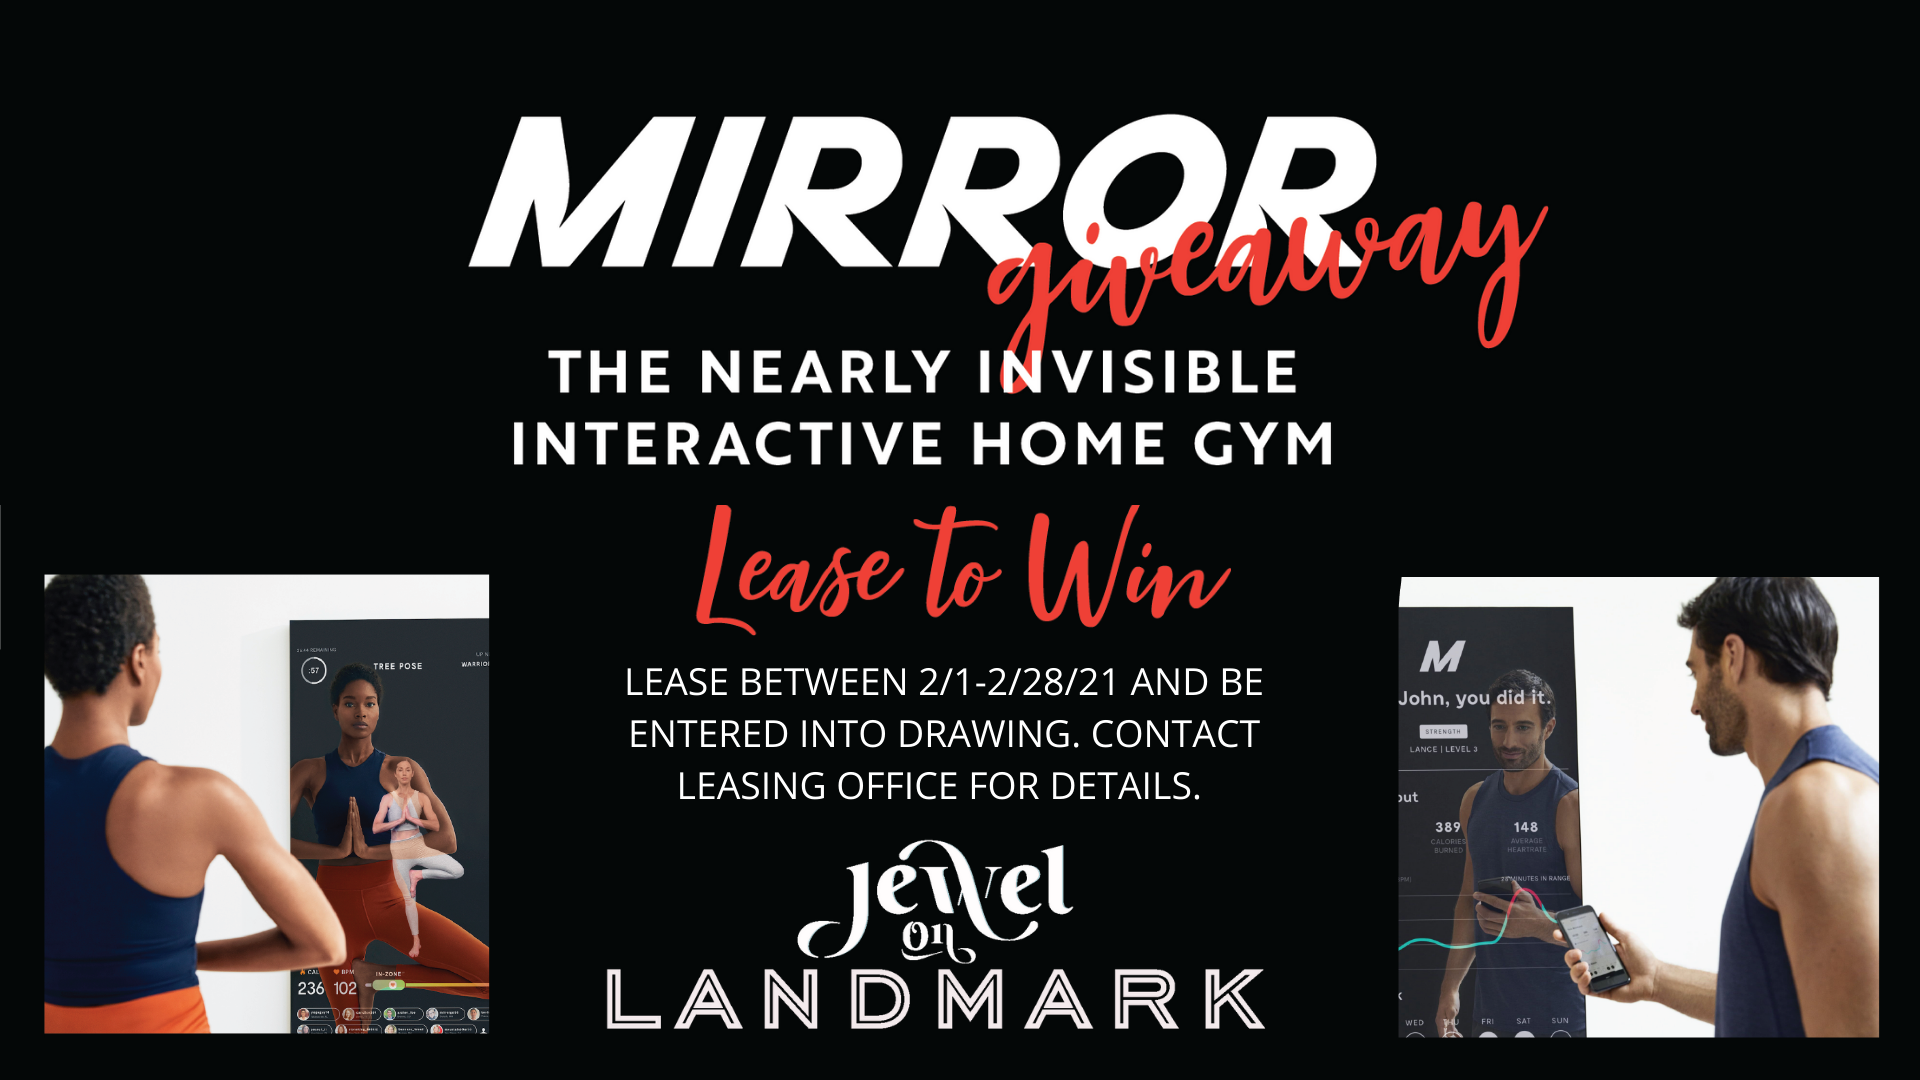 Mirror Giveaway. The nearly invisible interactive home gym. Lease to win. Lease between February 1, 2021 to February 28, 2021 and be entered into drawing. Contact leasing office for details. Jewel On Landmark.